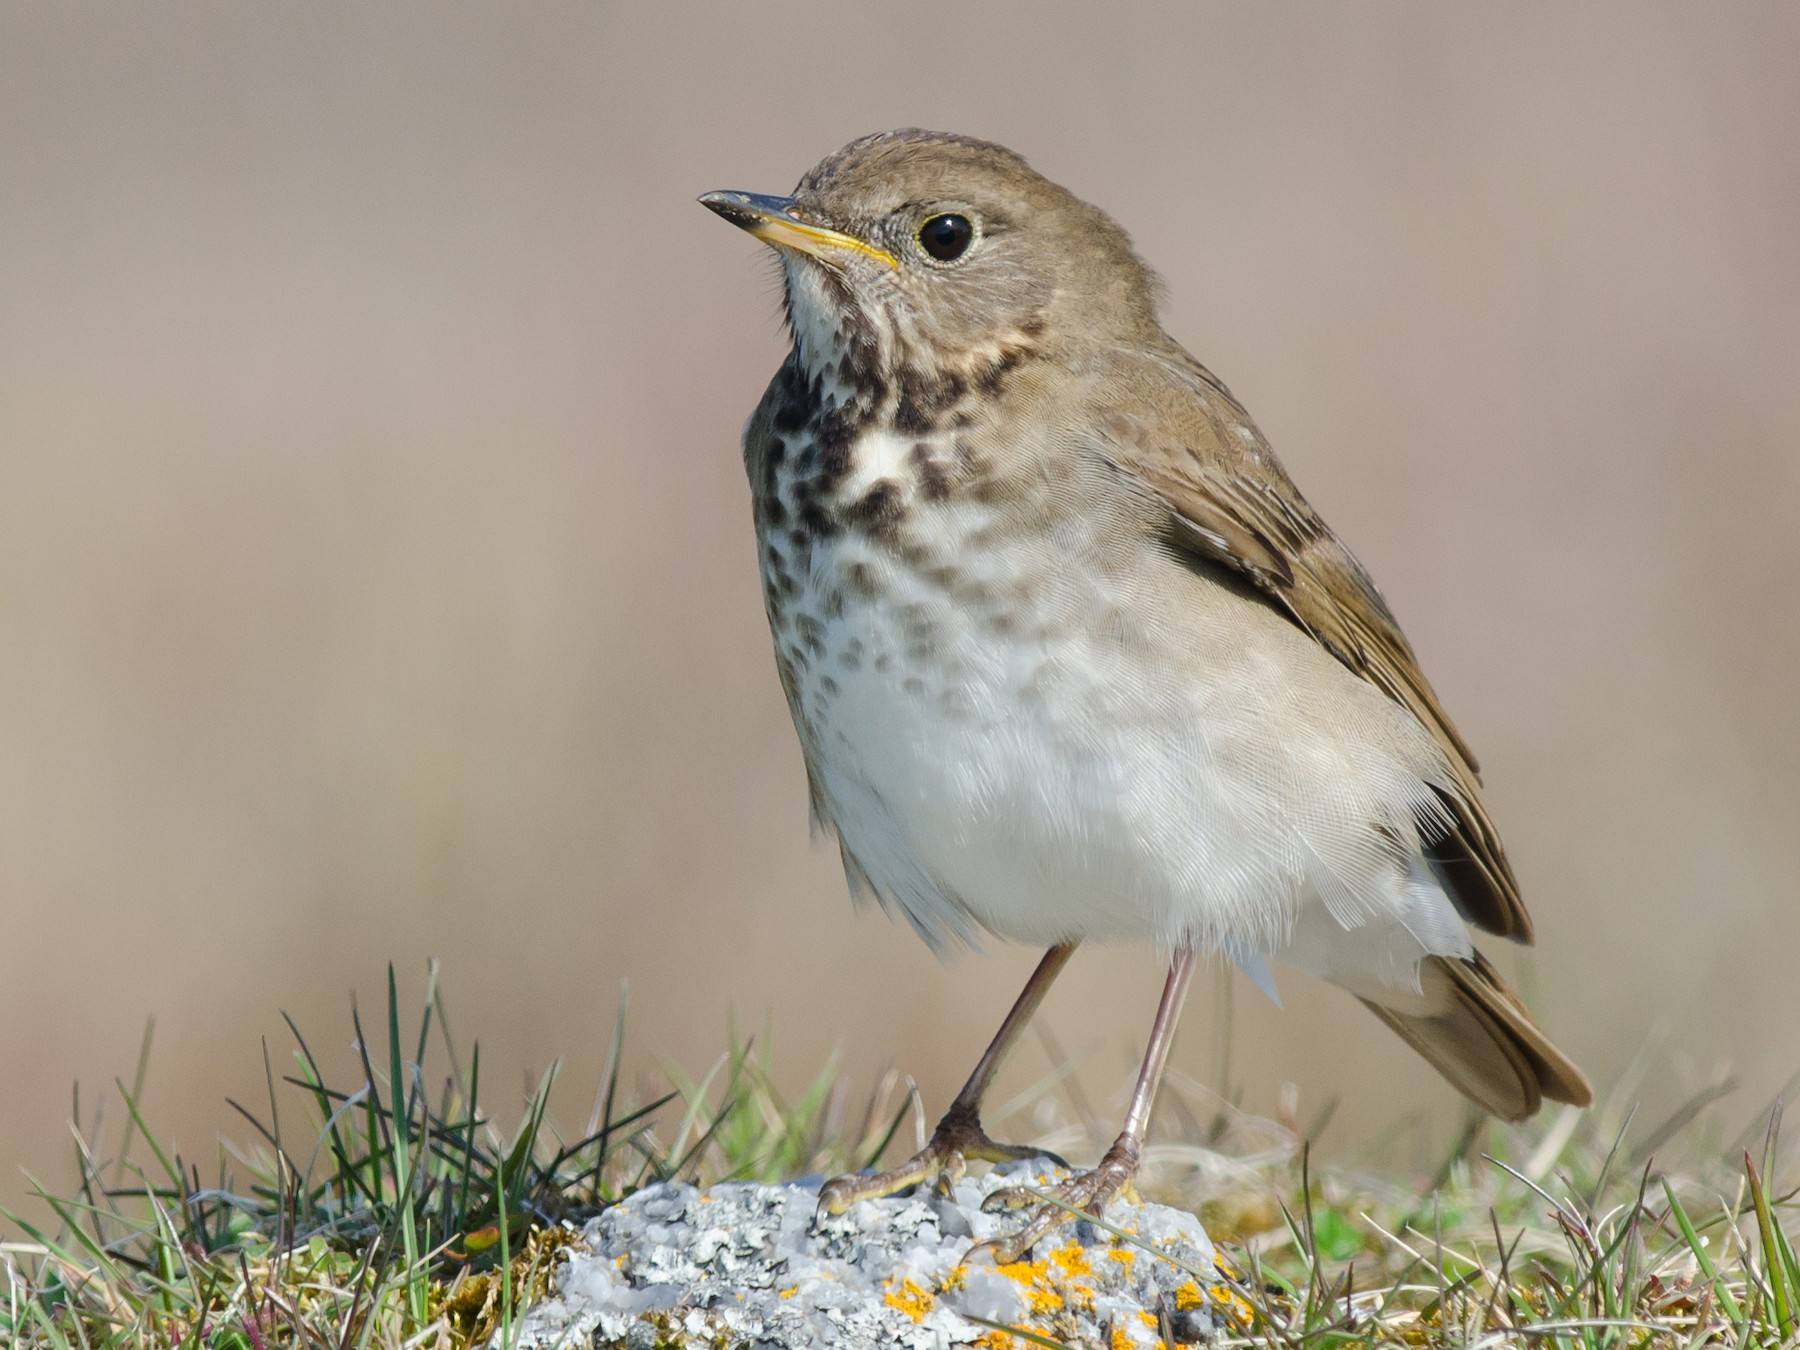 Gray-cheeked Thrush - Alix d'Entremont